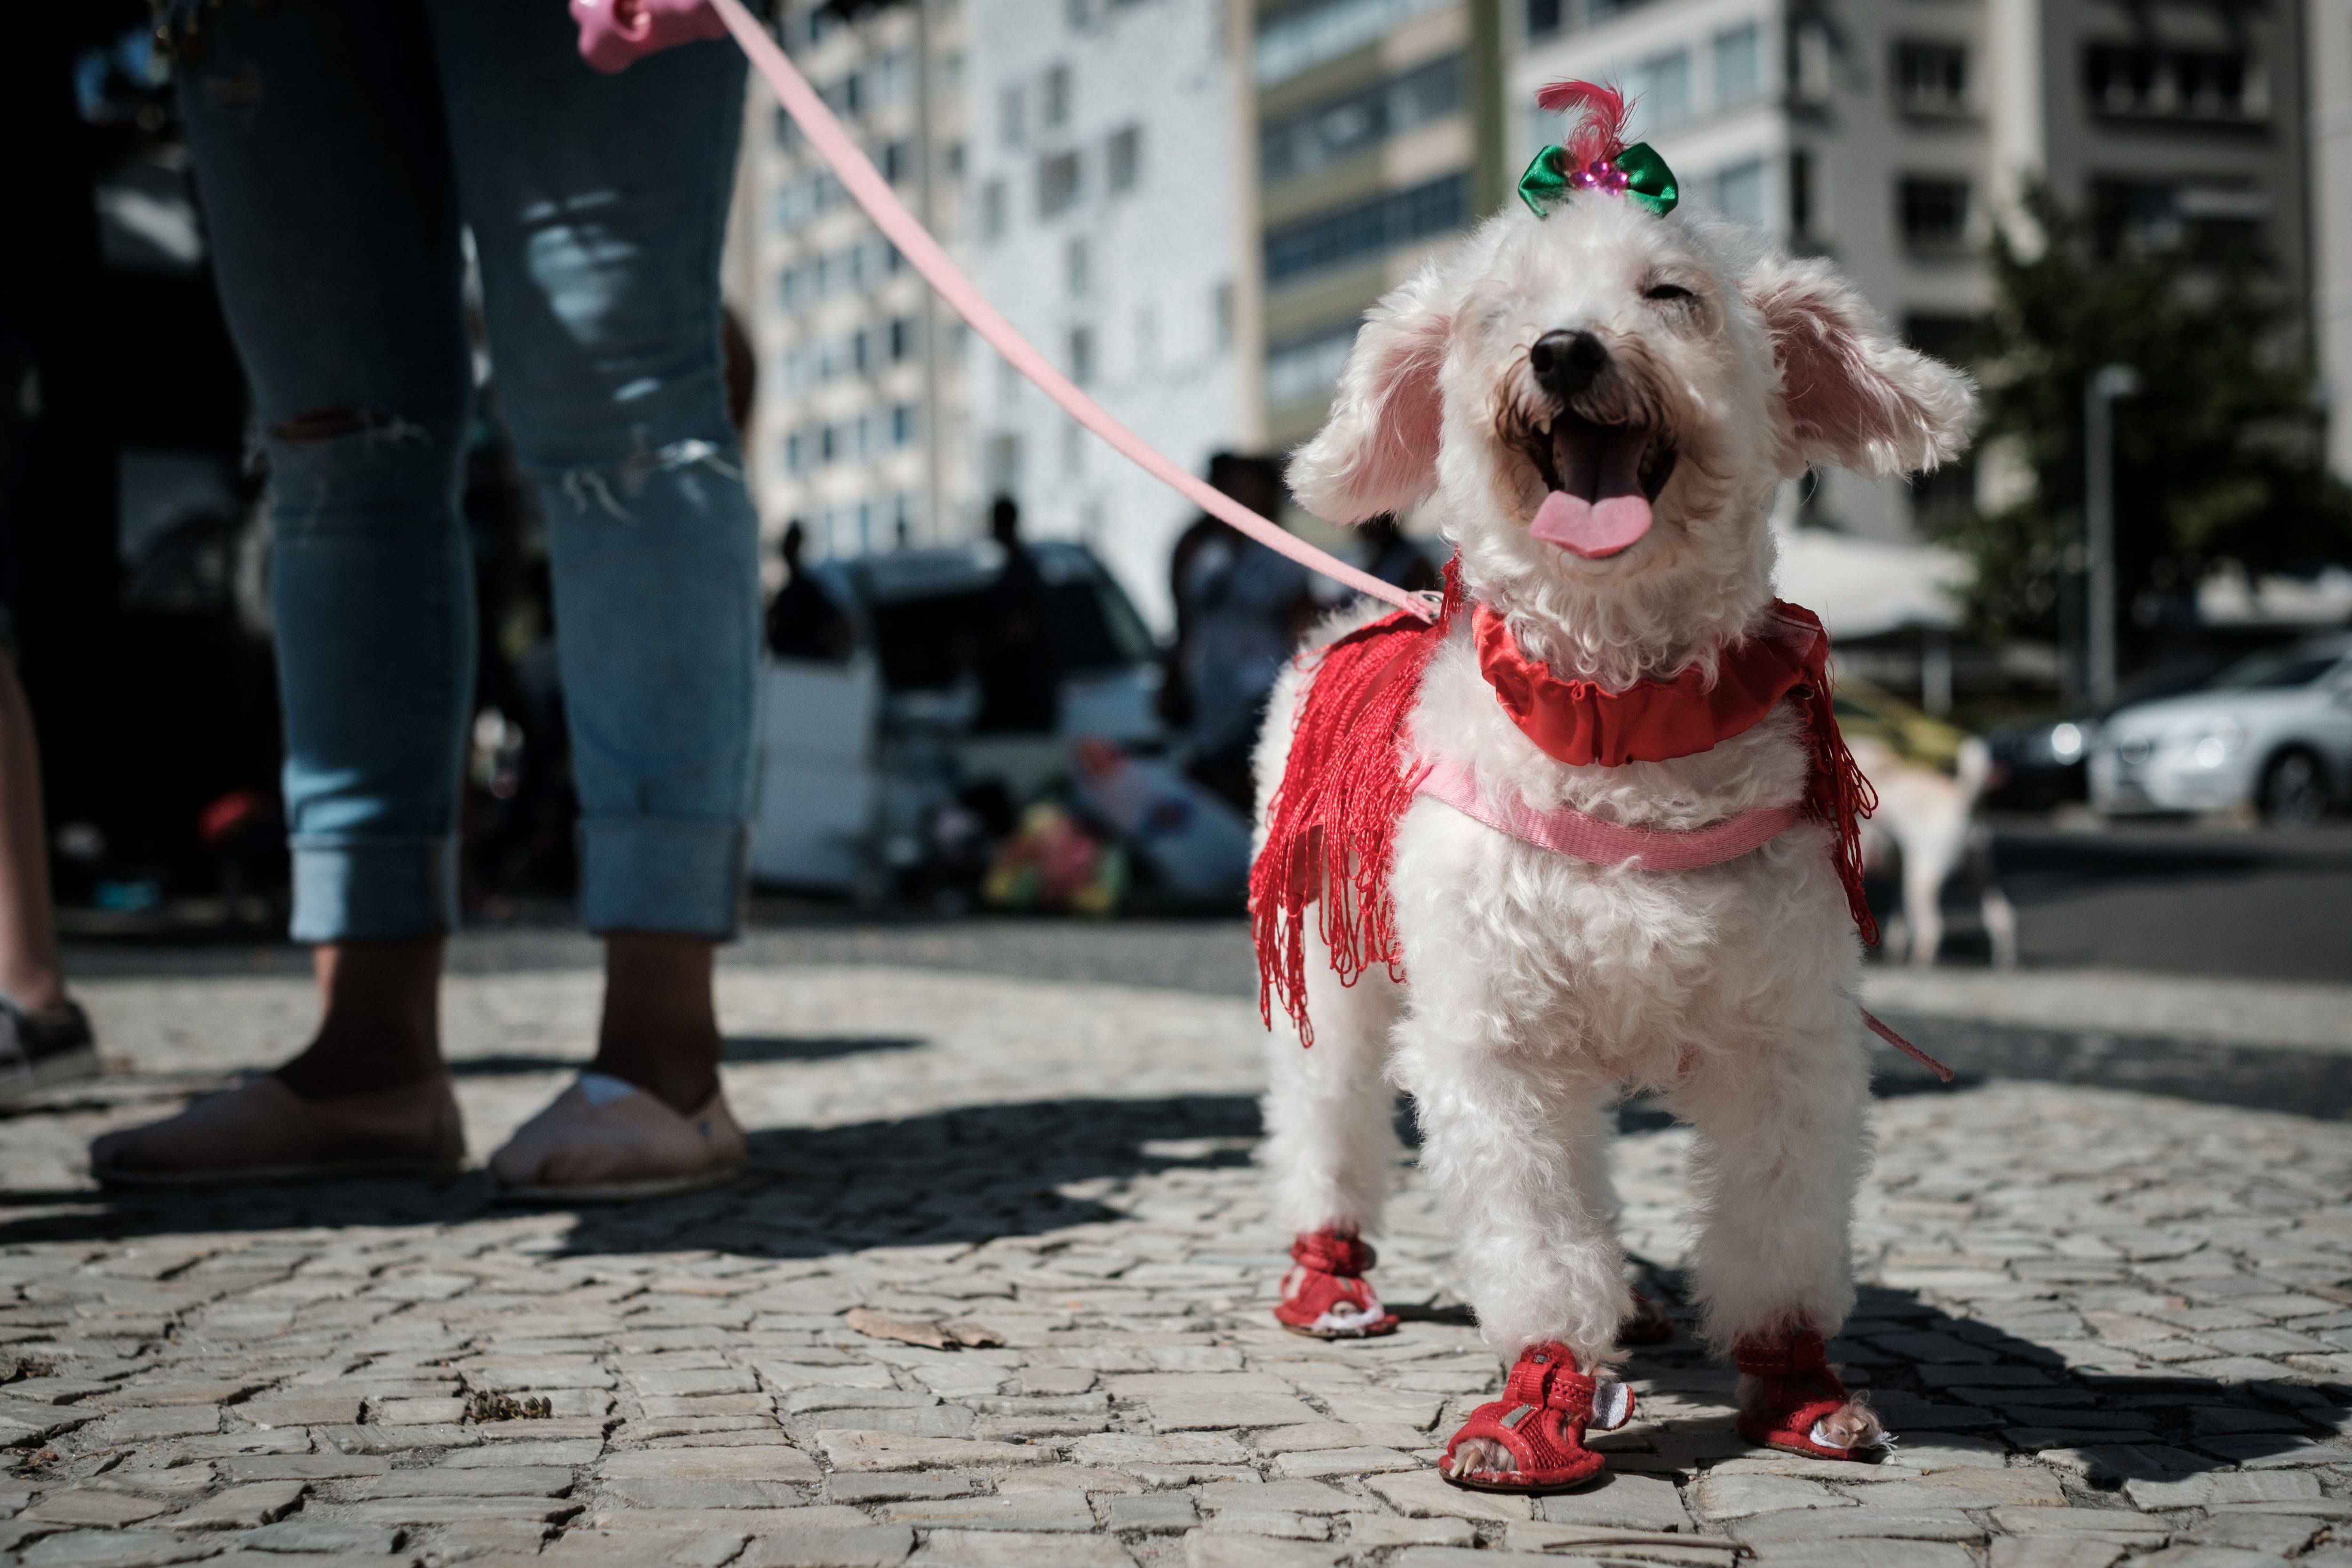 A dog dressed in costume is seen during the Rio Dog Carnival, known as the Blocao  with  bloco  meaning street party and  cao  dog, during pre-carnival celebrations at Copacabana beach in Rio de Janeiro, Brazil, on February 19, 2017. / AFP / Yasuyoshi CHIBA        (Photo credit should read YASUYOSHI CHIBA/AFP/Getty Images)